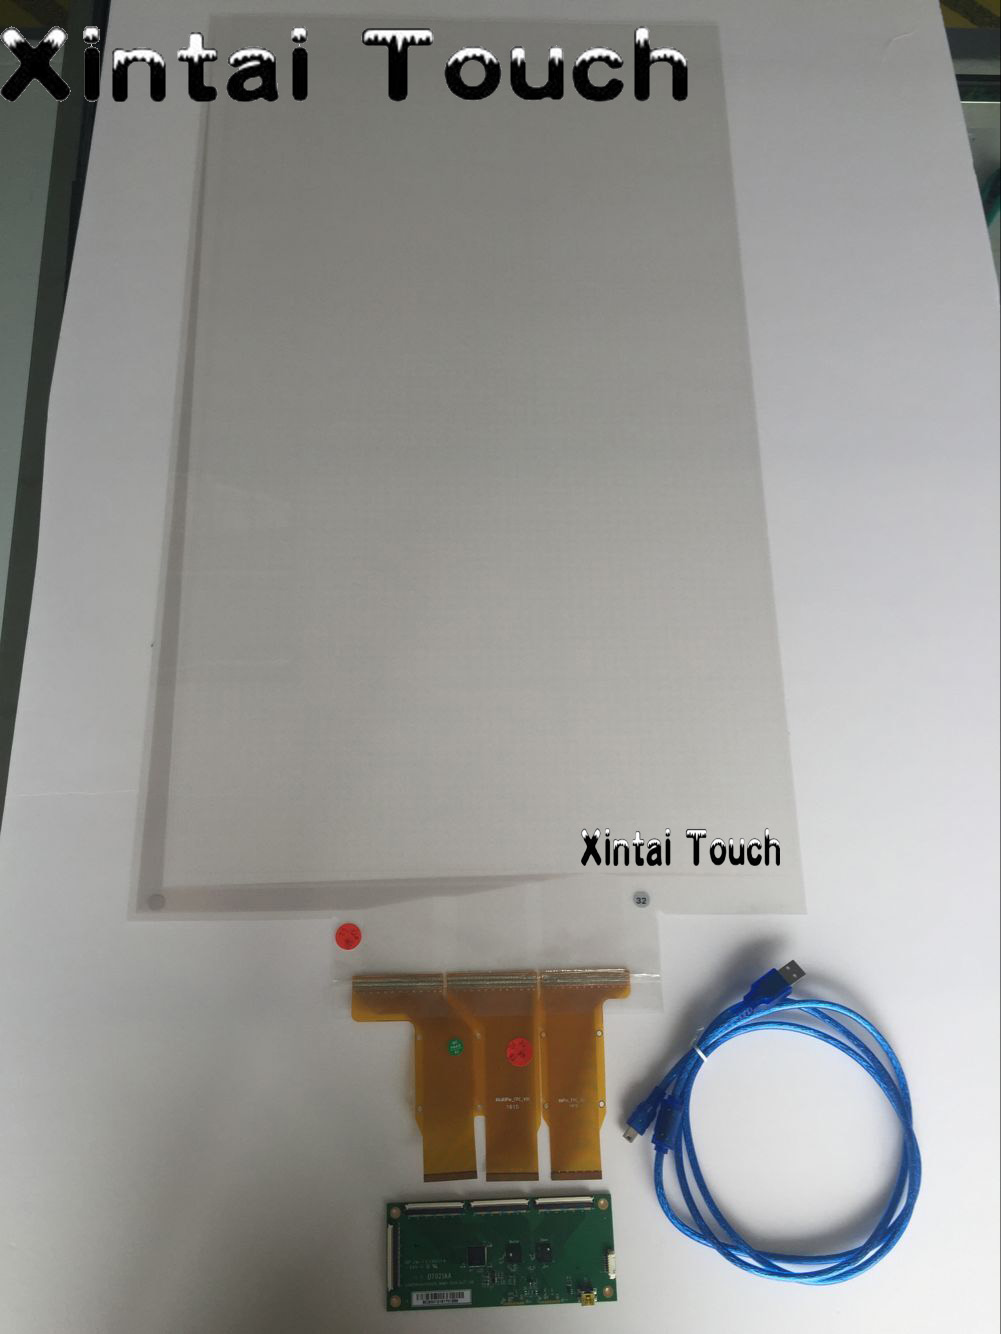 Best price 46 multi interactive capacitive touch foil film, High quality through LCD or projector (window shop display)